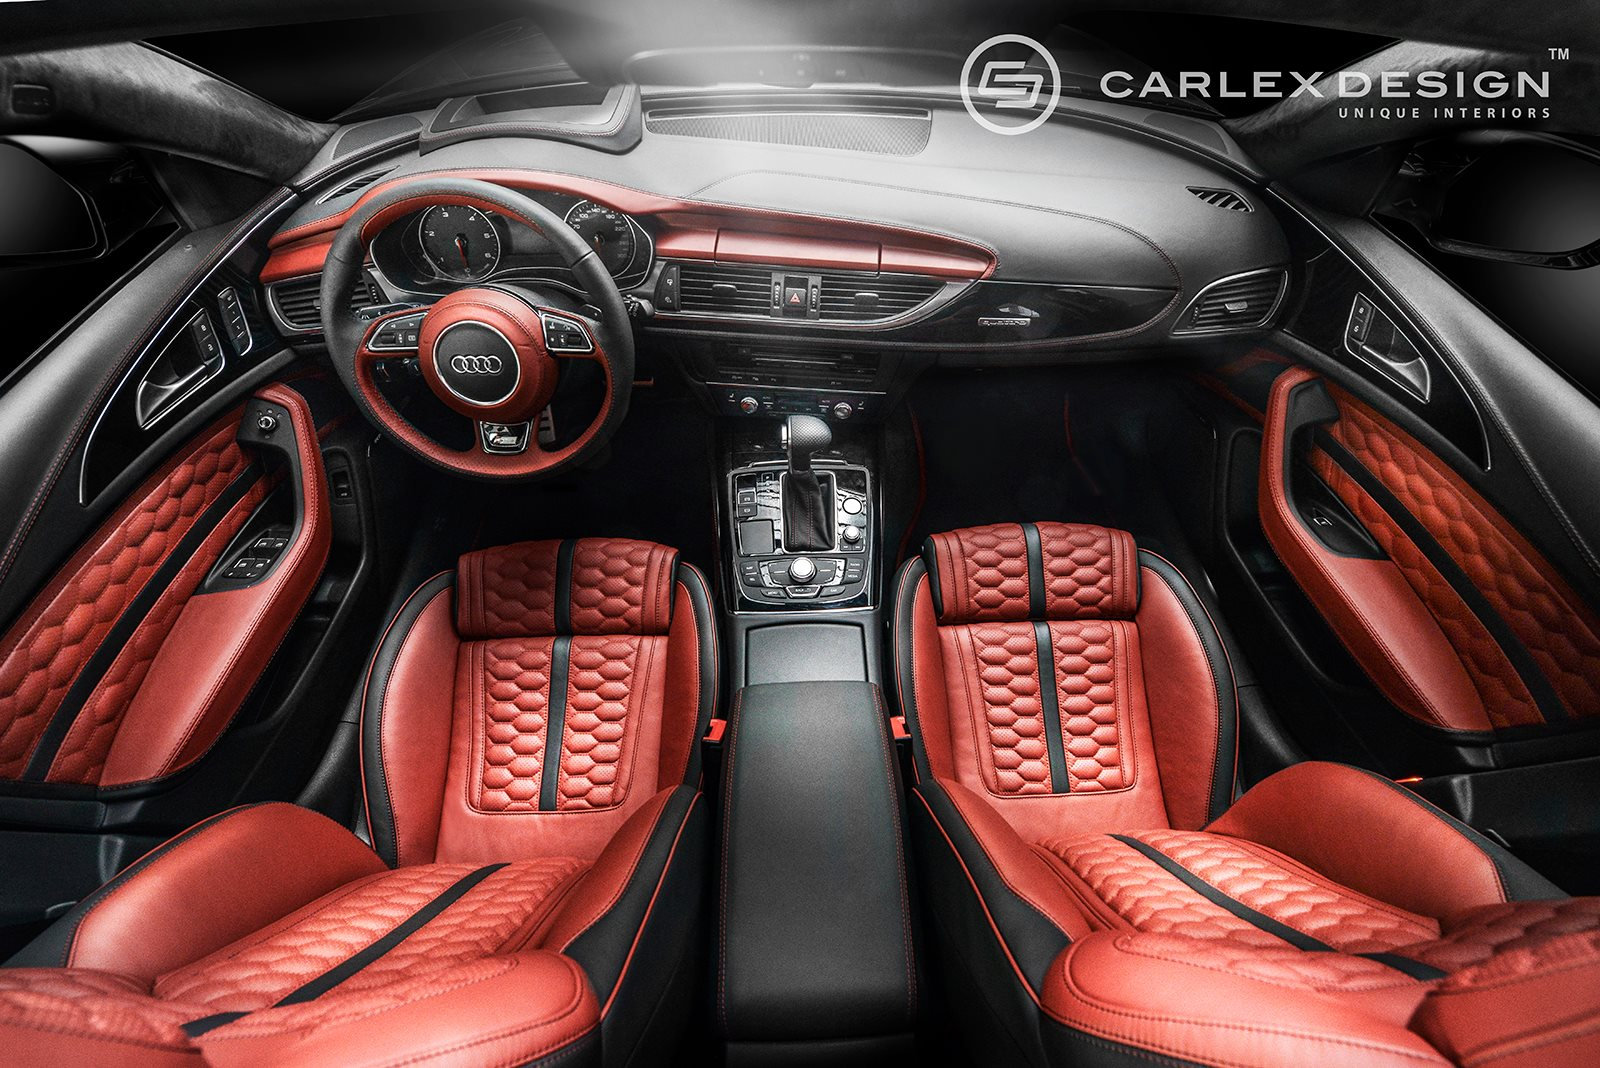 Audi A6 Gets Red Honeycomb Interior From Carlex Design